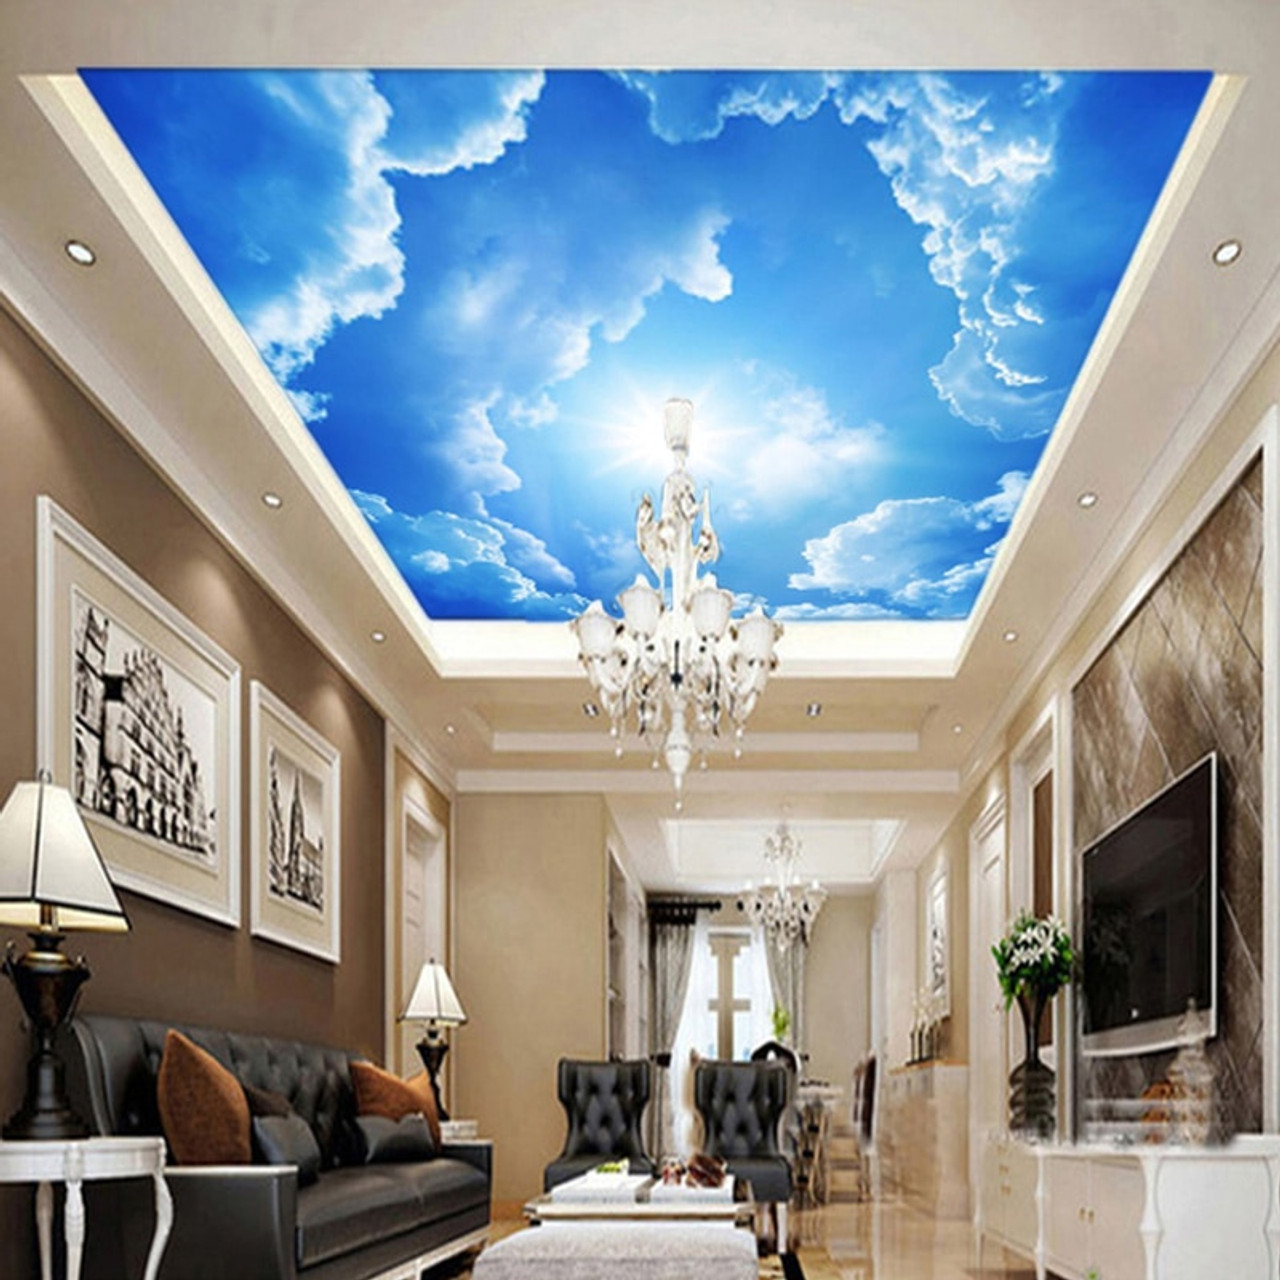 Modern 3D Wallpaper Blue Sky And White Clouds Wall Papers Home Interior Decor Living Room Ceiling Lobby Mural Wallpaper